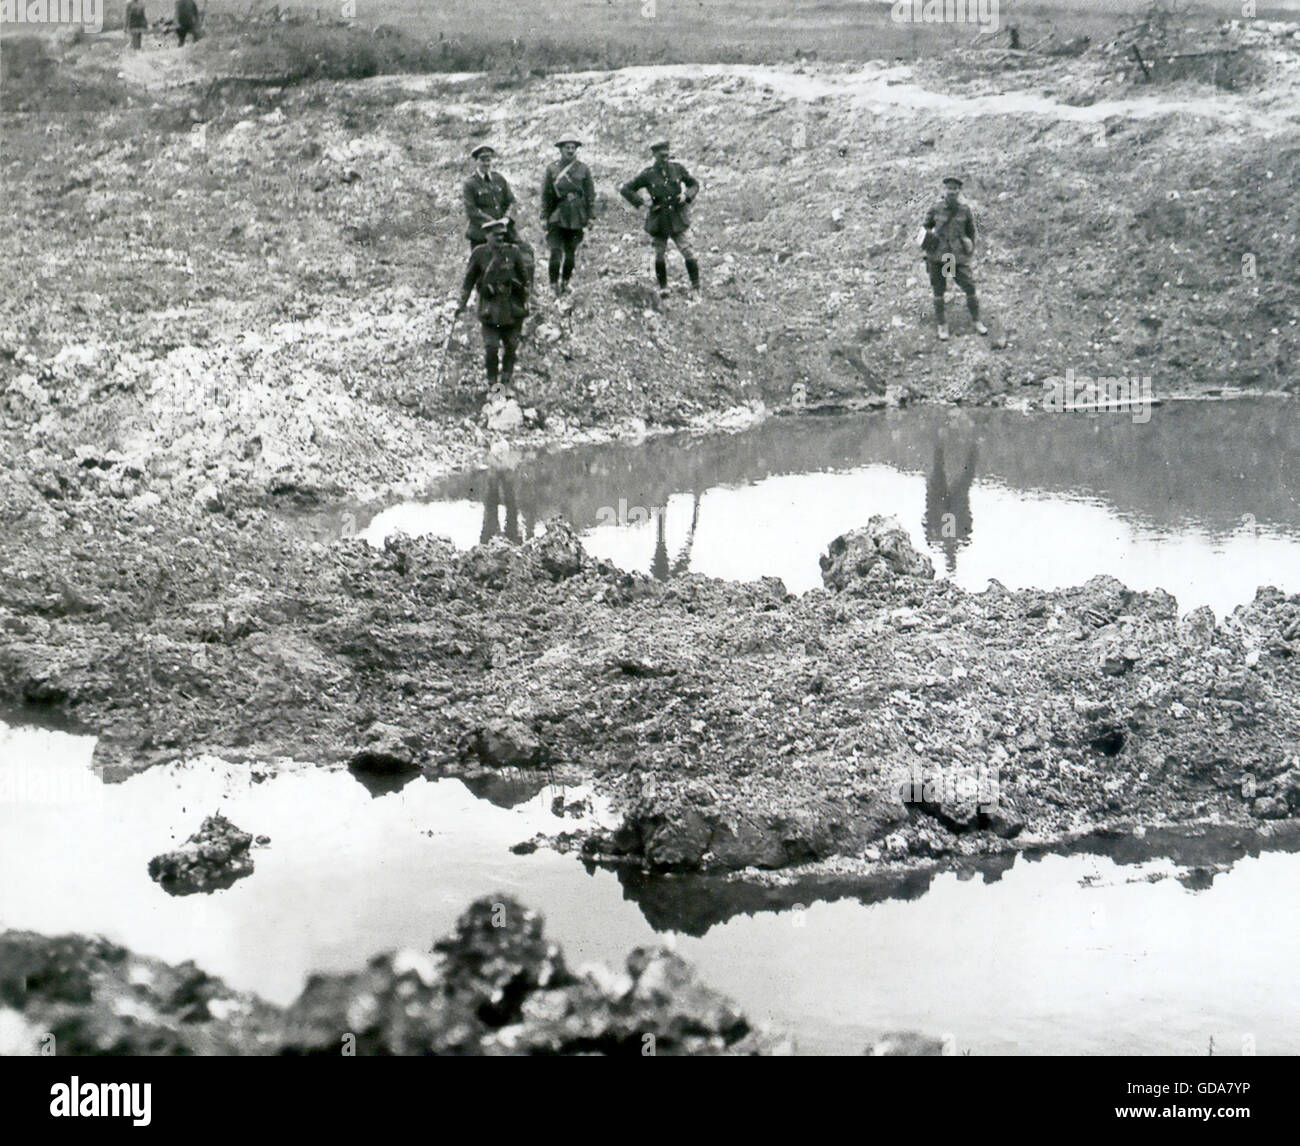 FIRST WORLD WAR  British officers and soldiers inspect a shell ravaged landscape in northern France - Stock Image